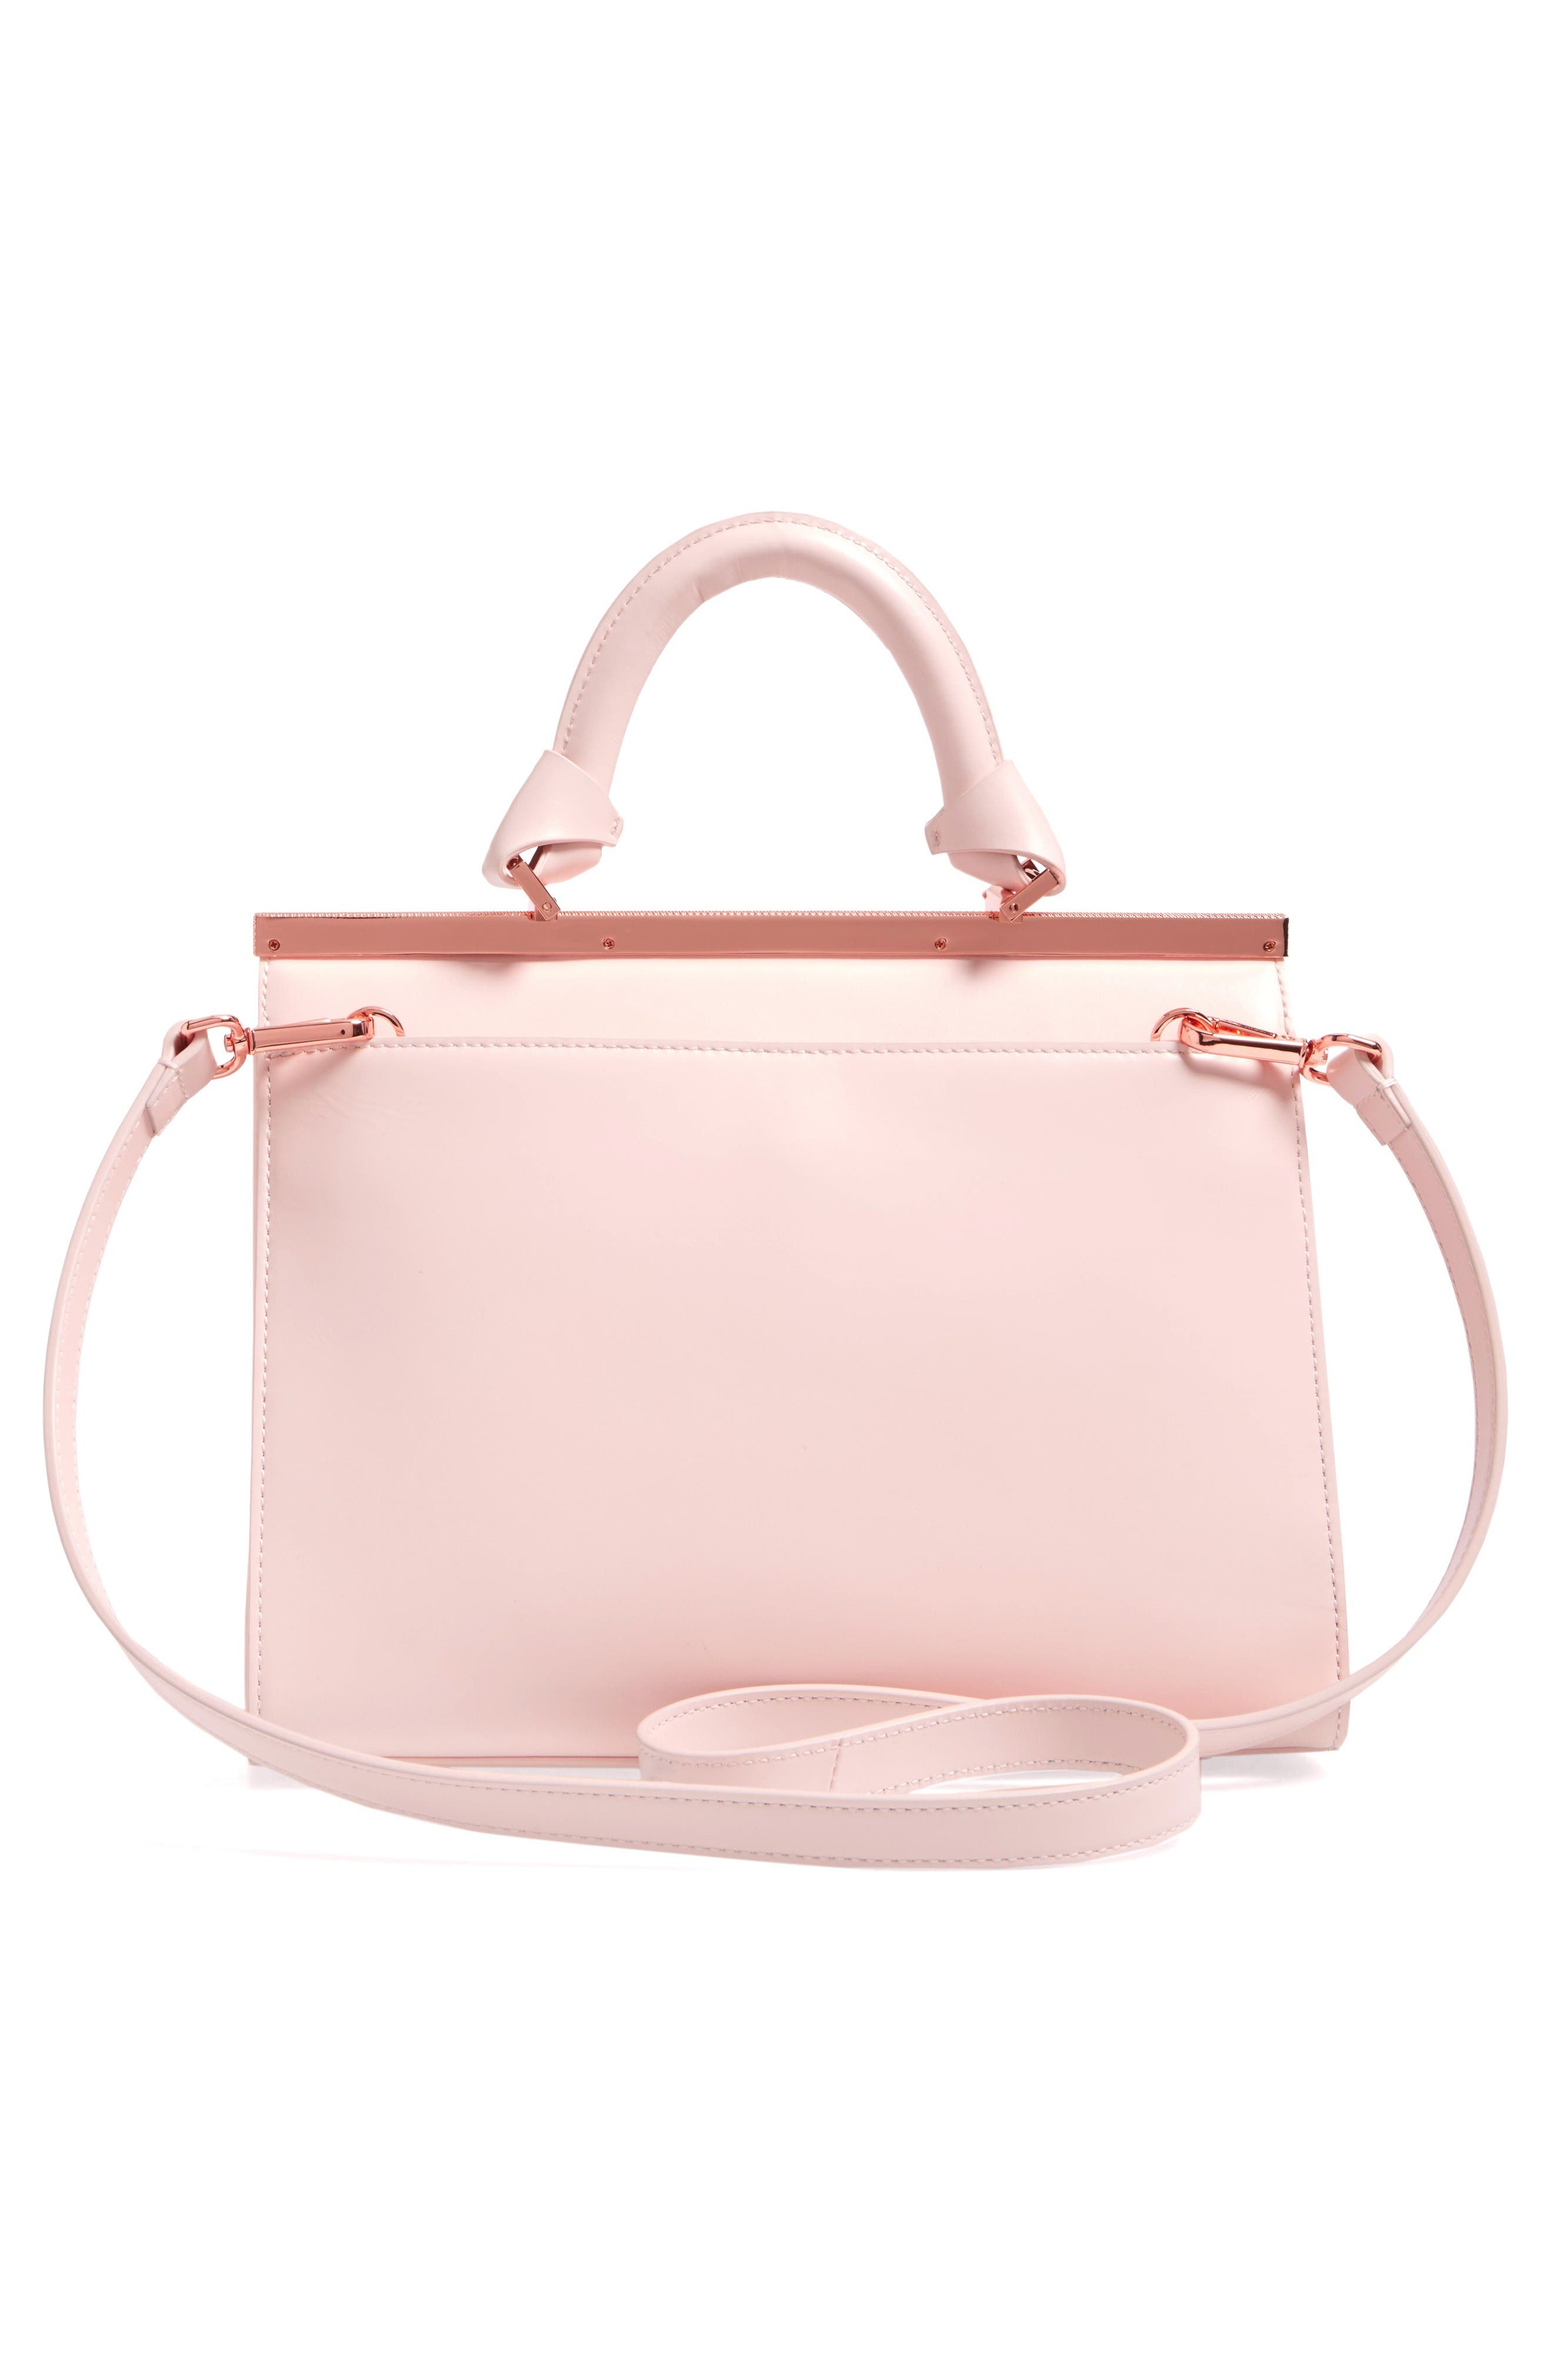 Croc Embossed Leather Satchel,                             Alternate thumbnail 3, color,                             Baby Pink